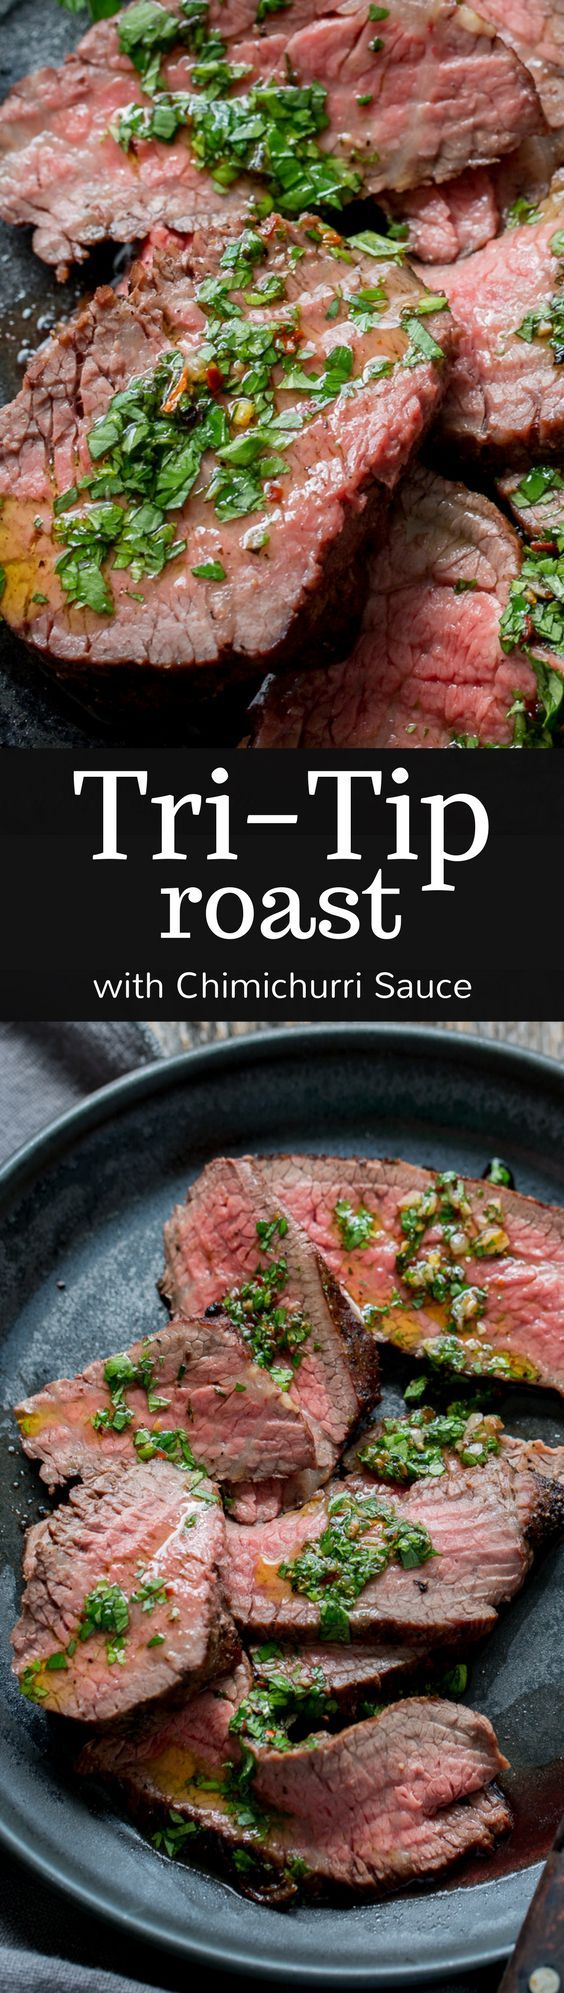 Tri-Tip Roast with Chimichurri Sauce - Chimichurri is a delicious, bright and bold green sauce often used as a condiment for grilled meat like the Tri-Tip roast. www.savingdessert...